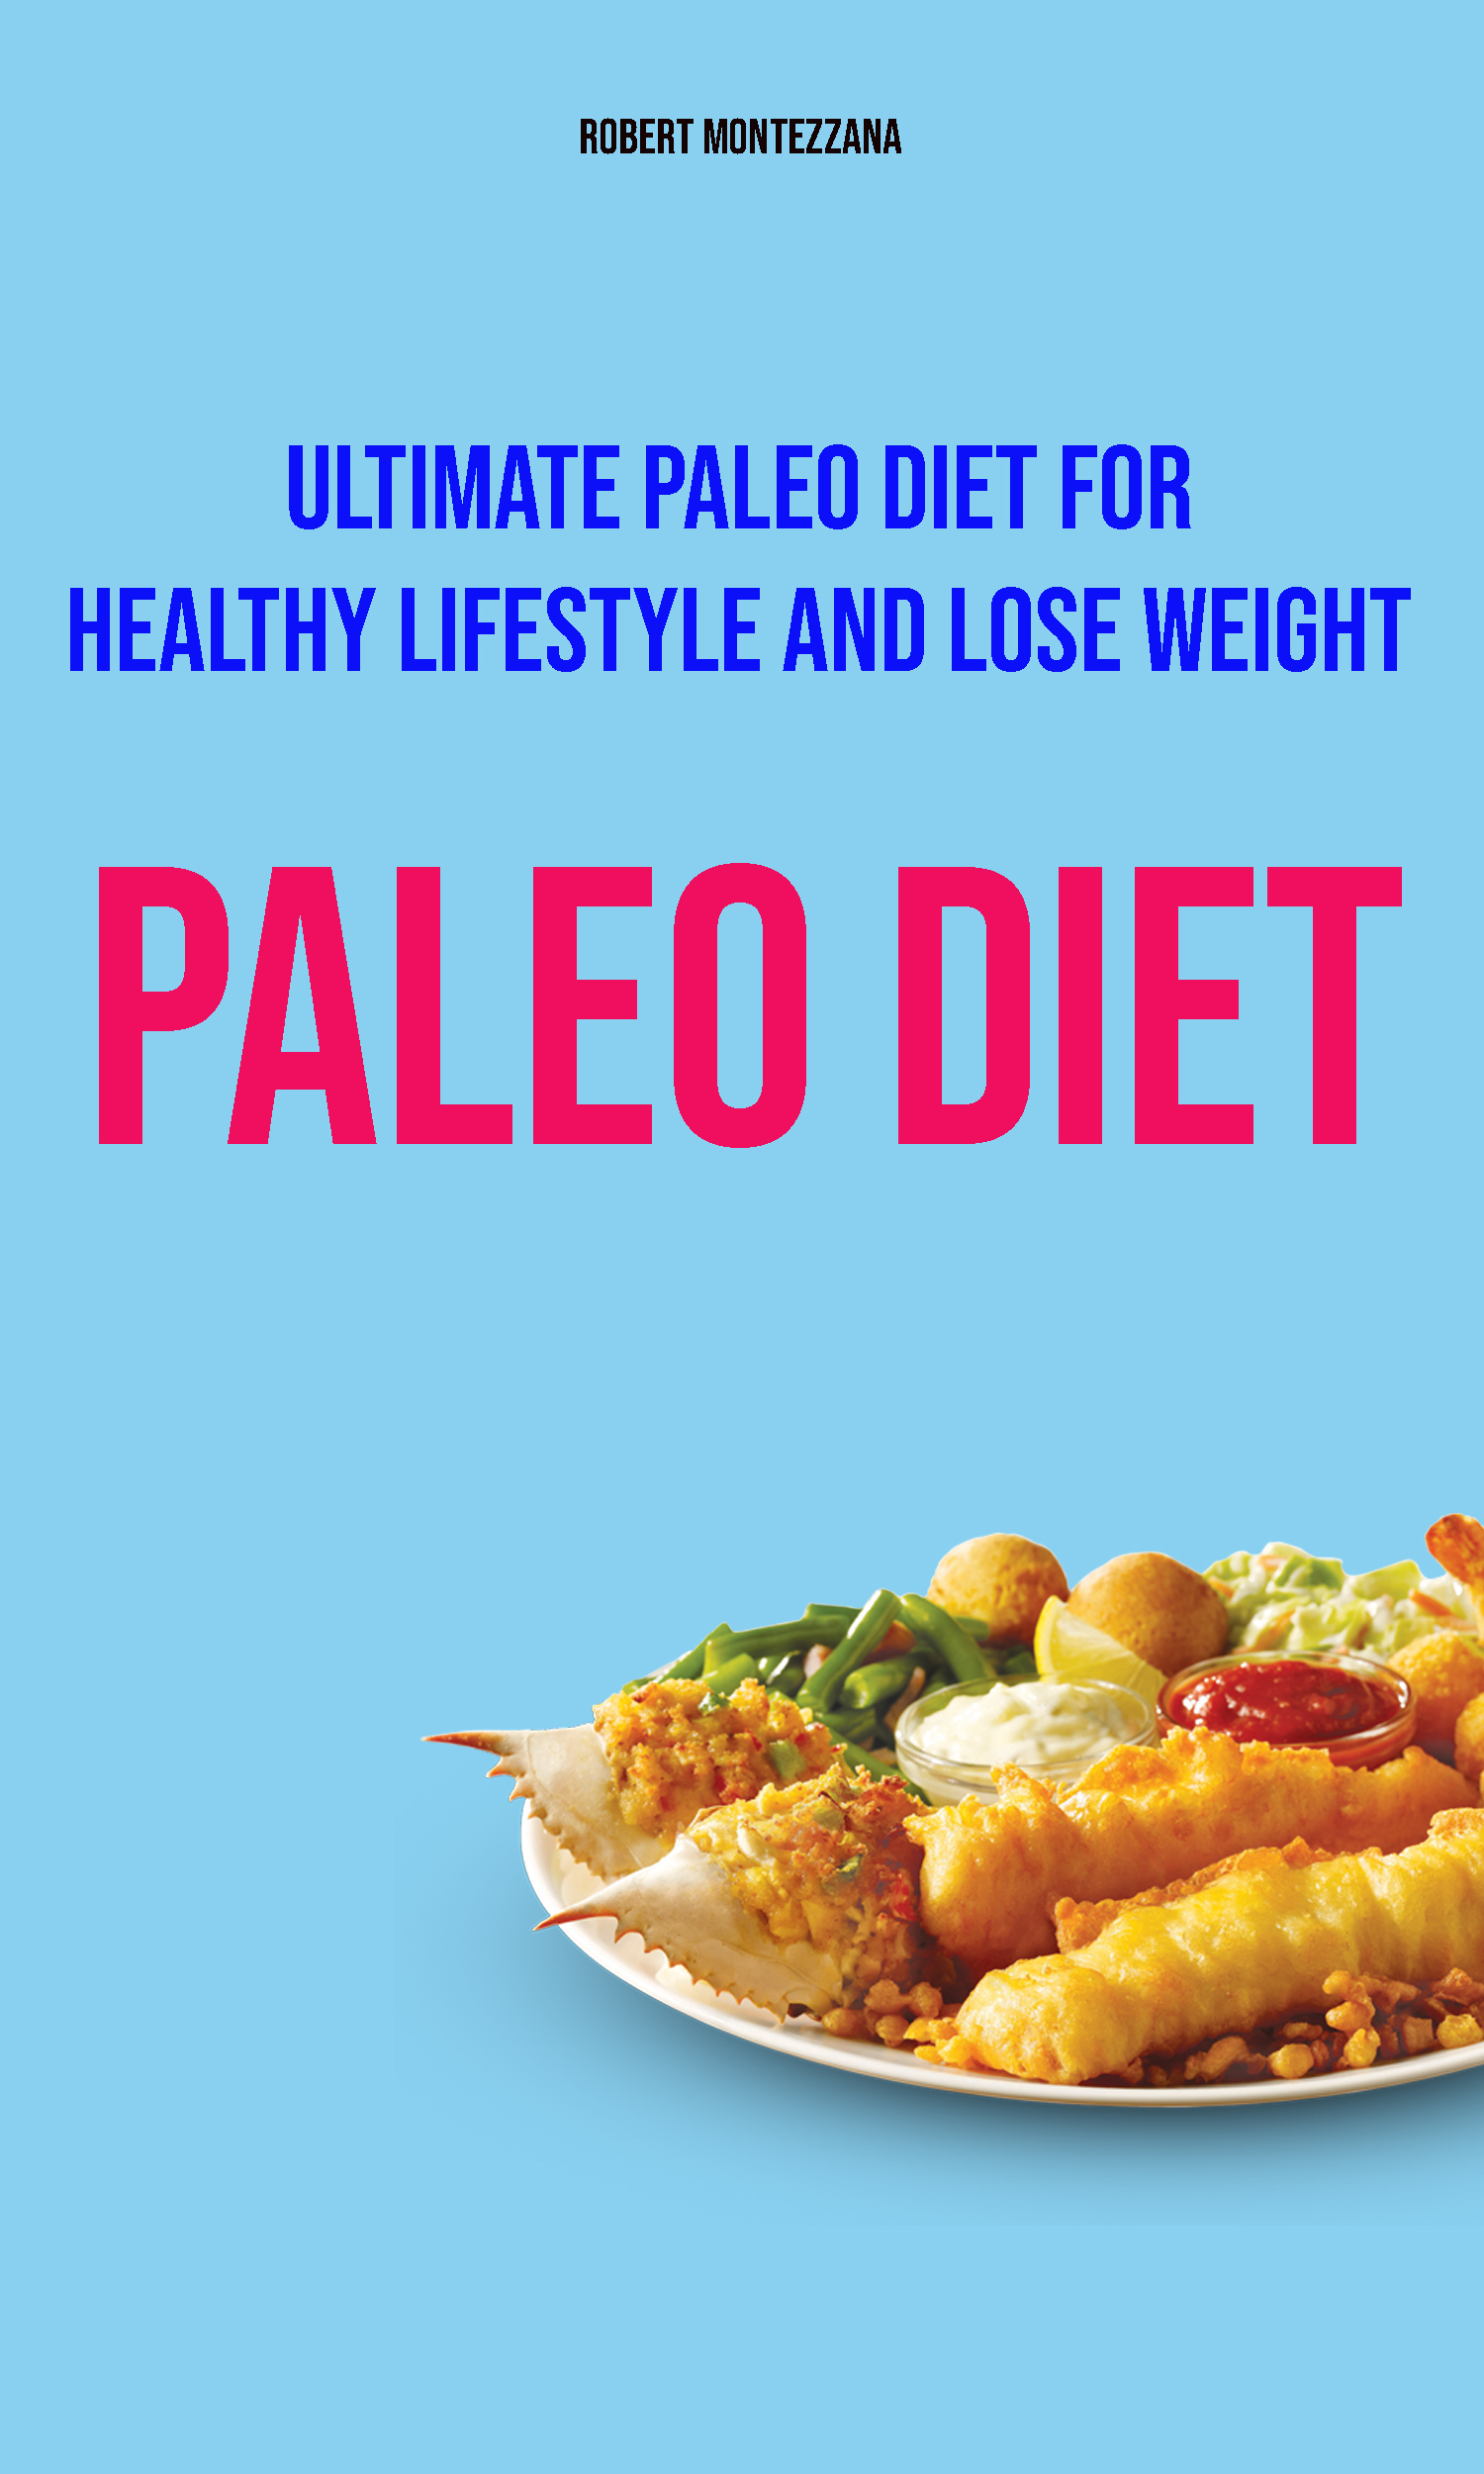 Paleo diet: ultimate paleo diet for healthy lifestyle and lose weight